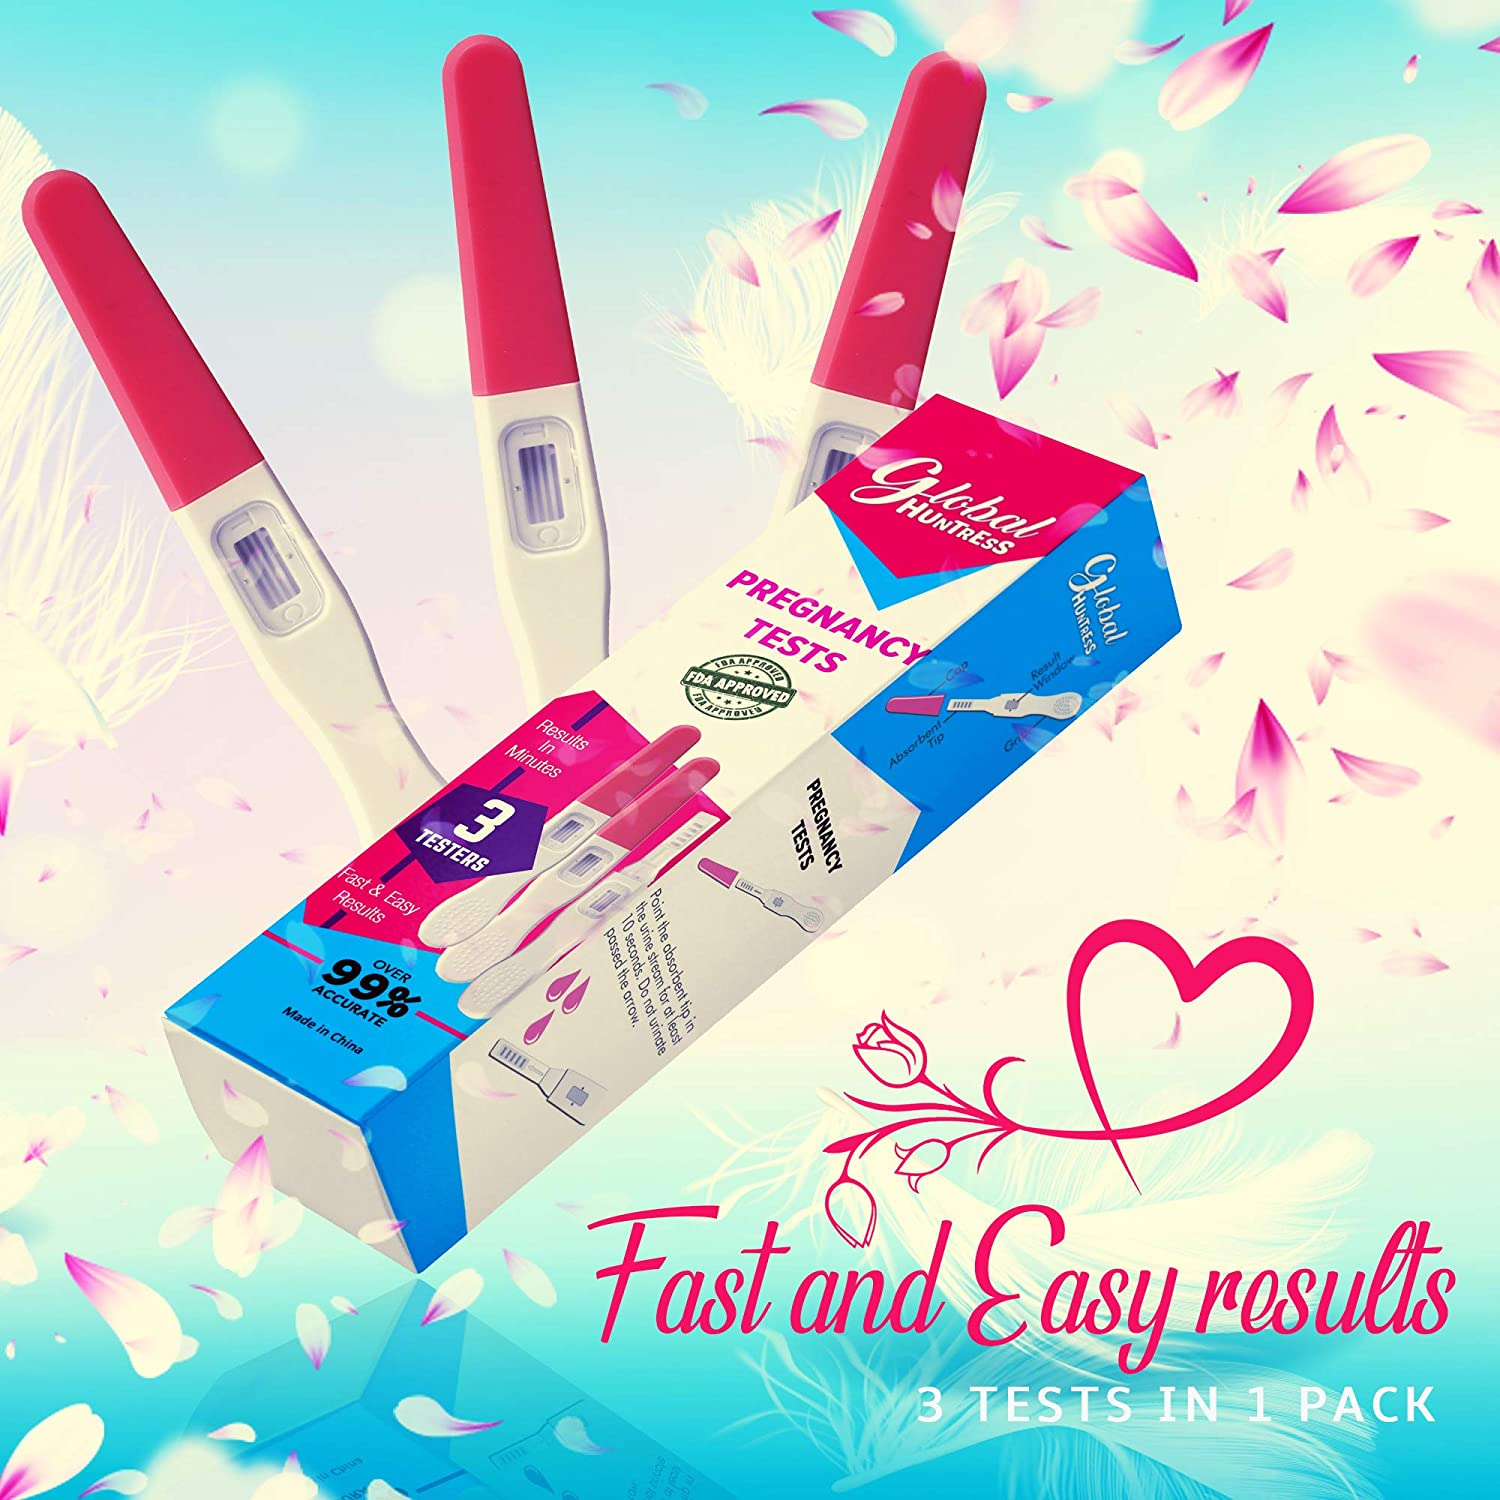 at-Home Early Pregnancy Test Kit | Early Detection 3 Tests Included - Accurate & Easy Response Results